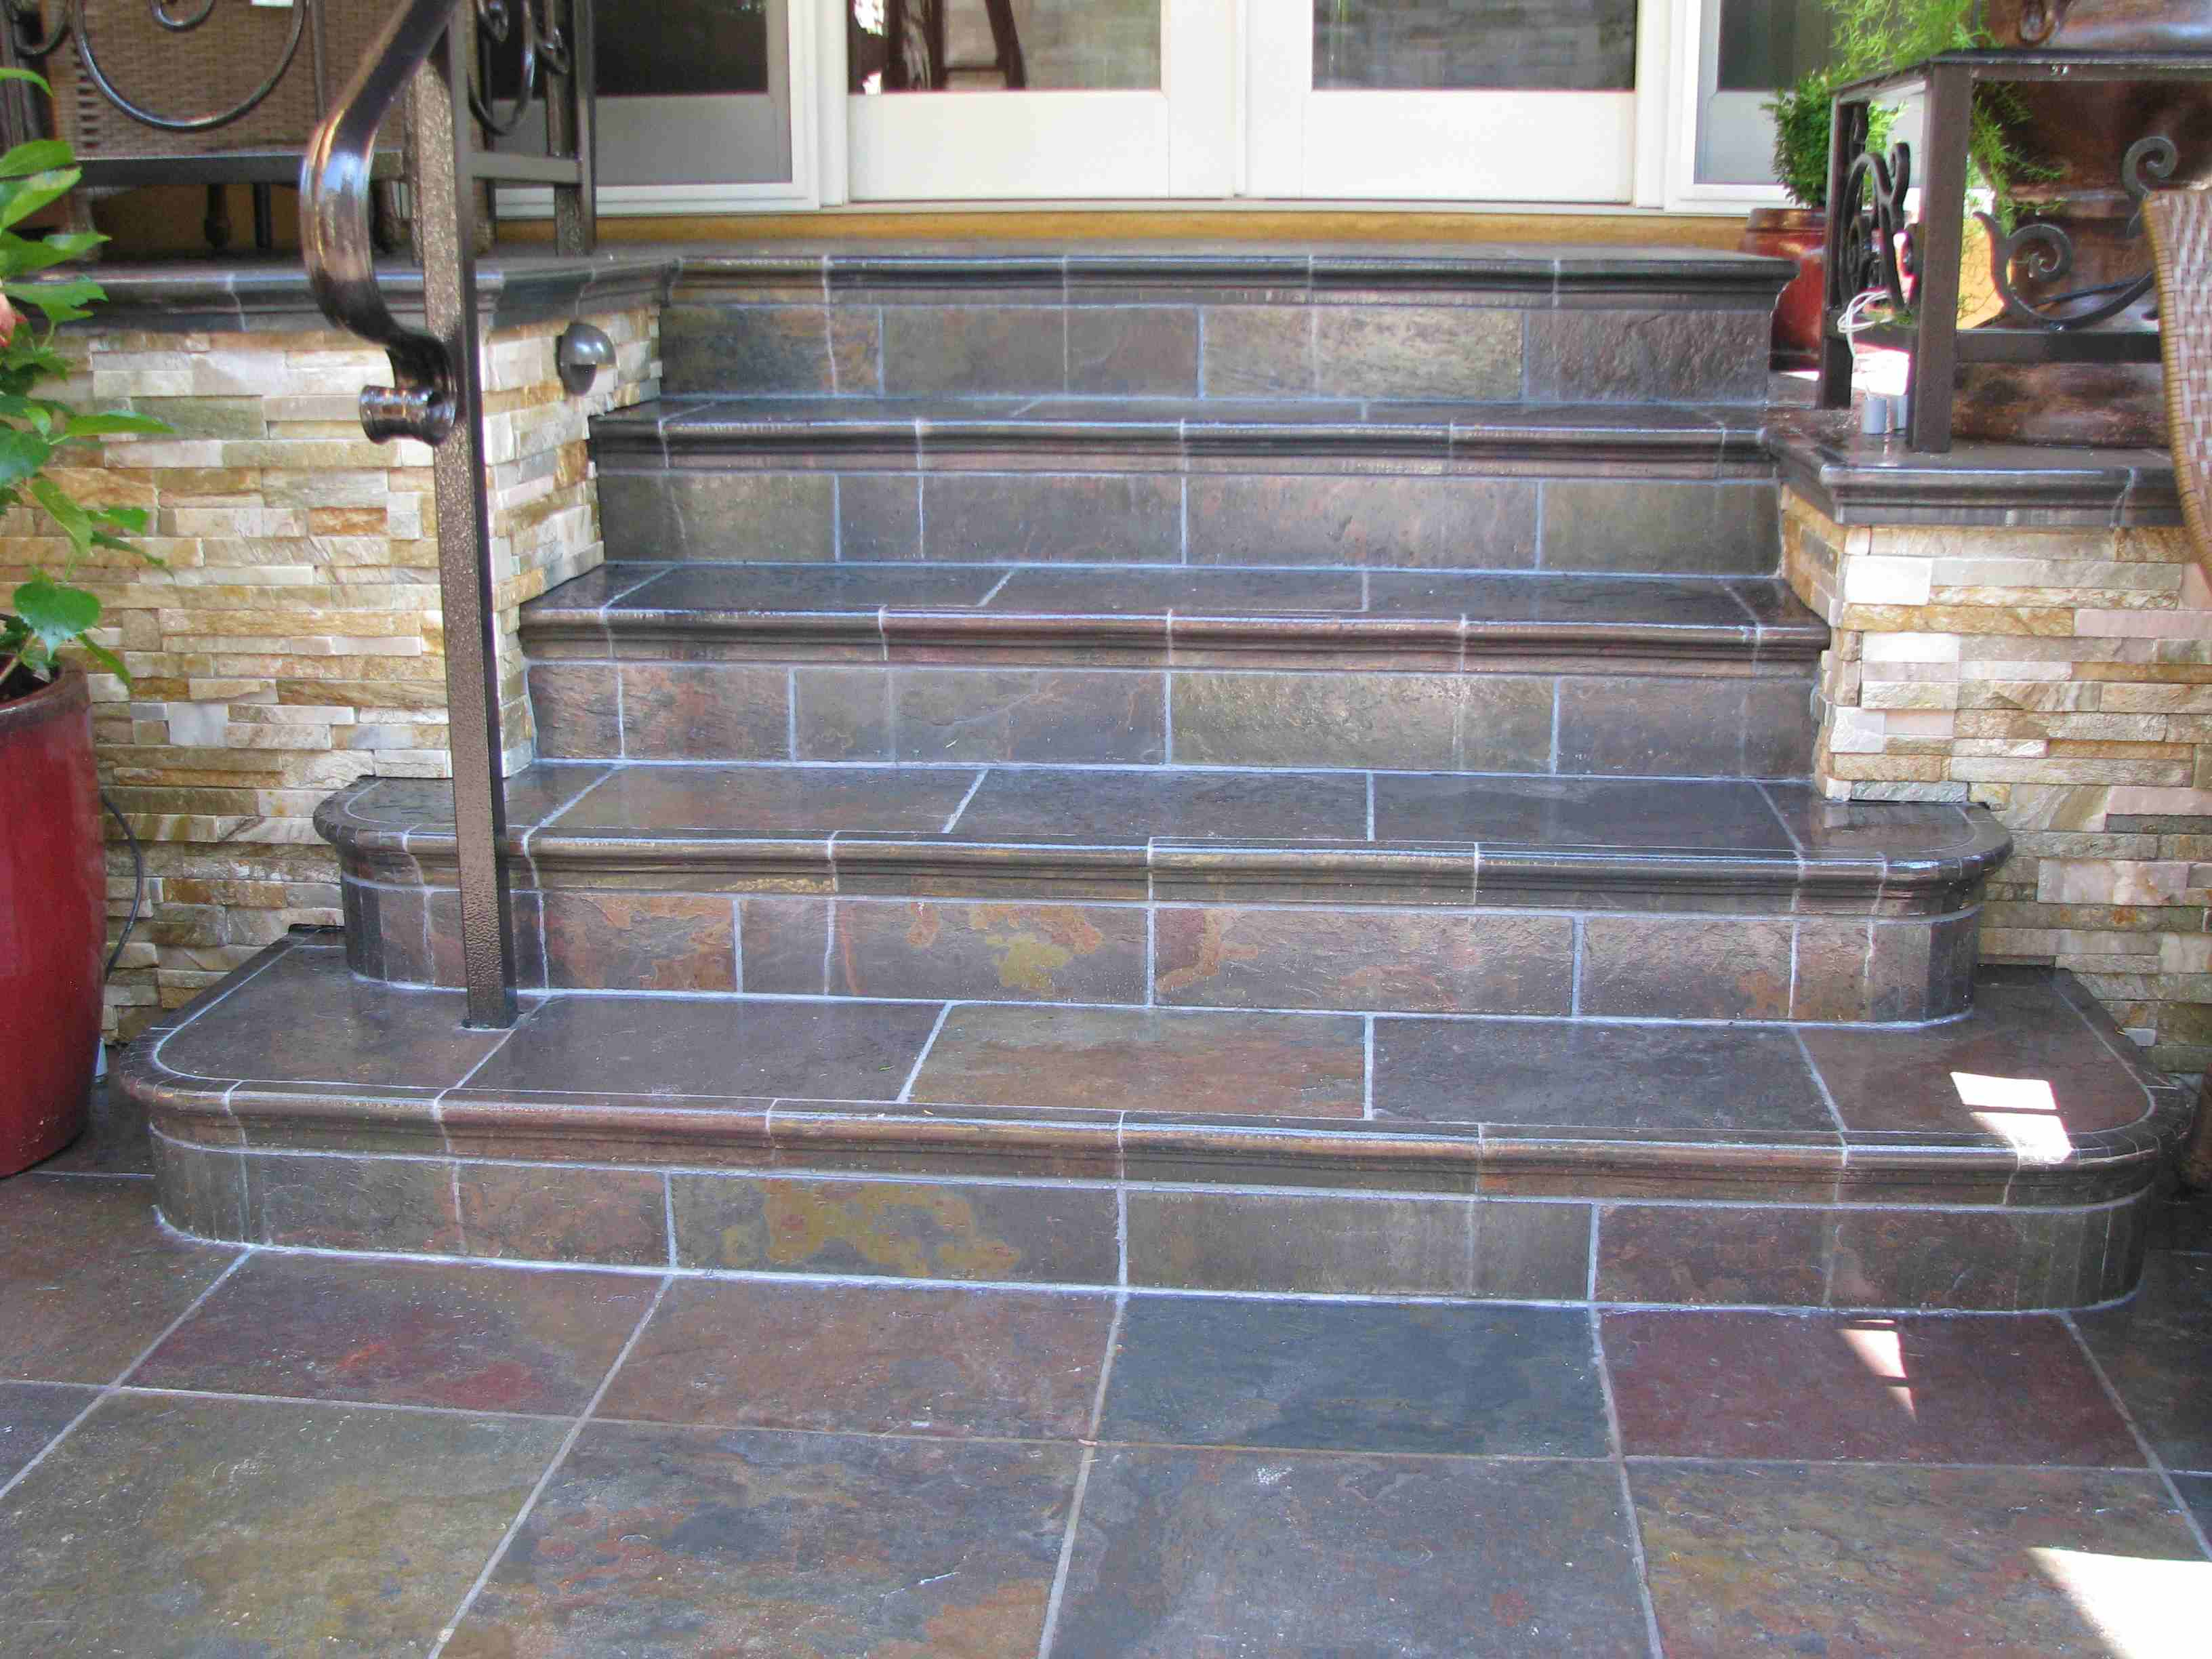 Superbe Can You Tile Over Tile Wall In Scenic Can You Put Patio Tiles Over Gr  Outdoor Decoration Outdoor Patio Tiles Over Concrete Although Considerable  Fireplace I ...